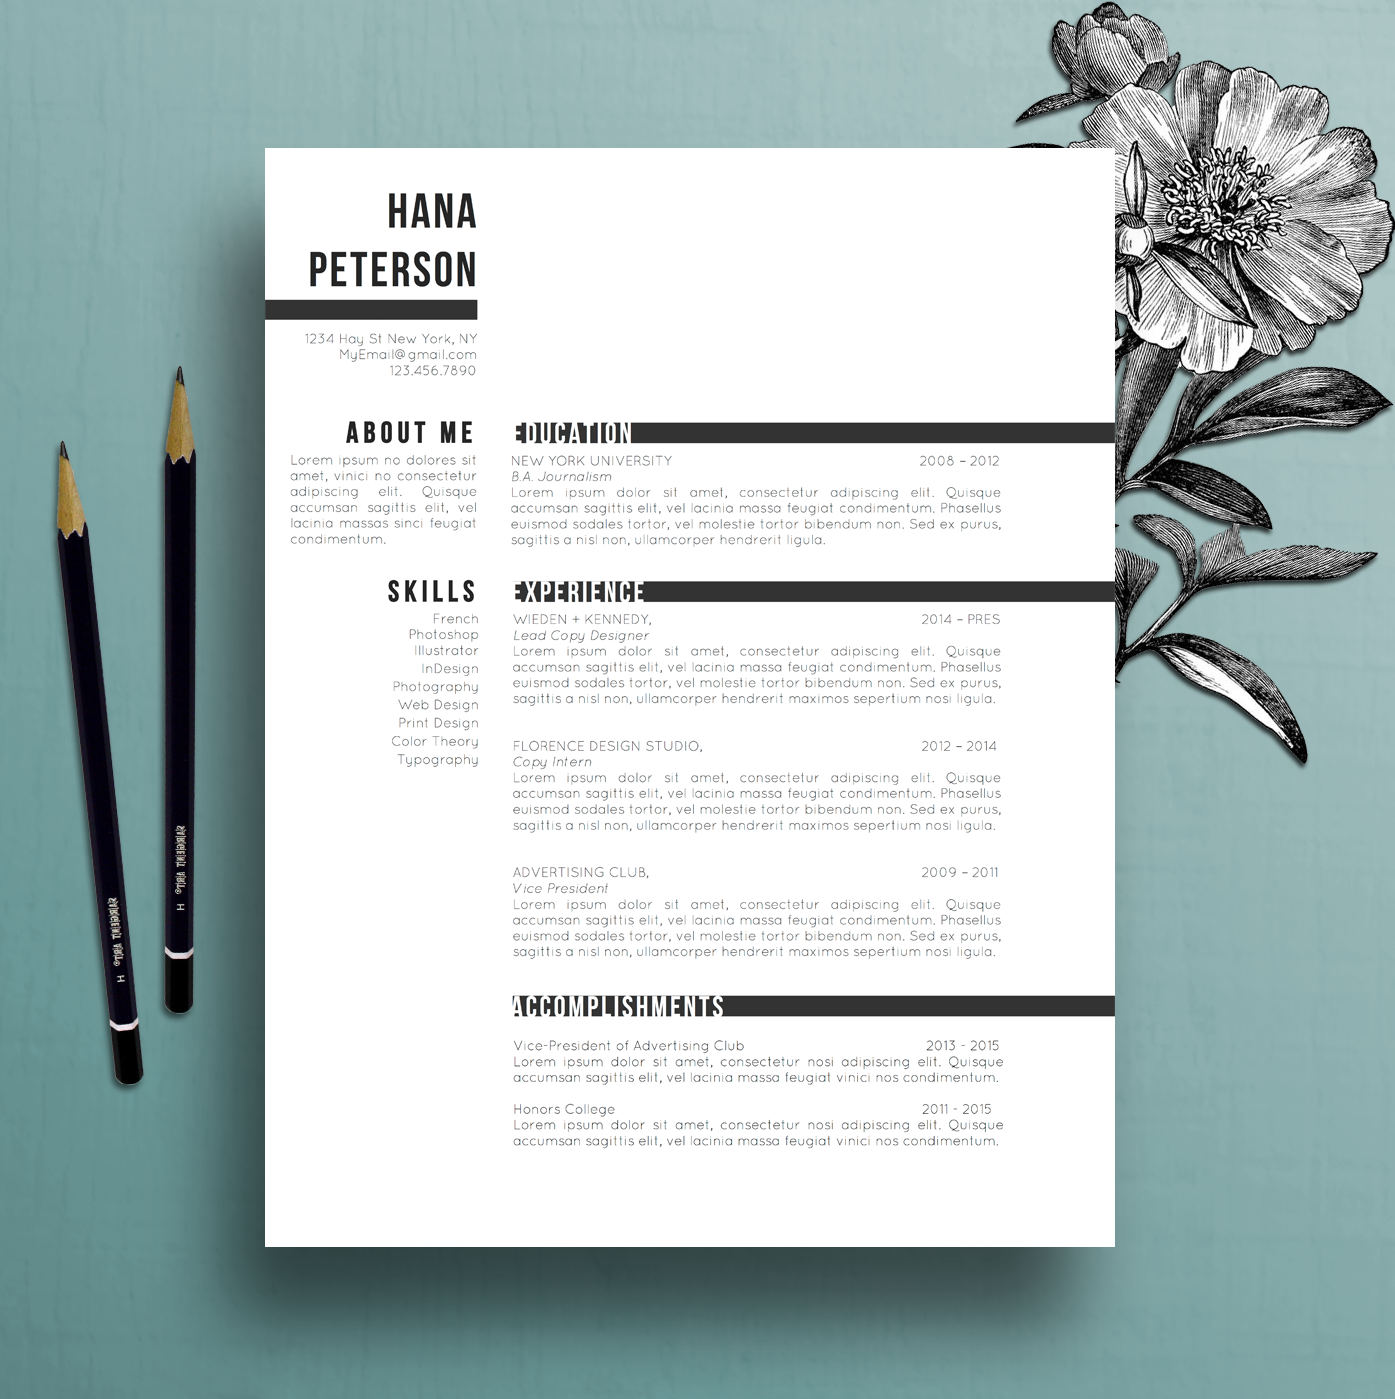 resume template cv template cover letter resume advice for professional resume template cover letter template references template ms word creative resume